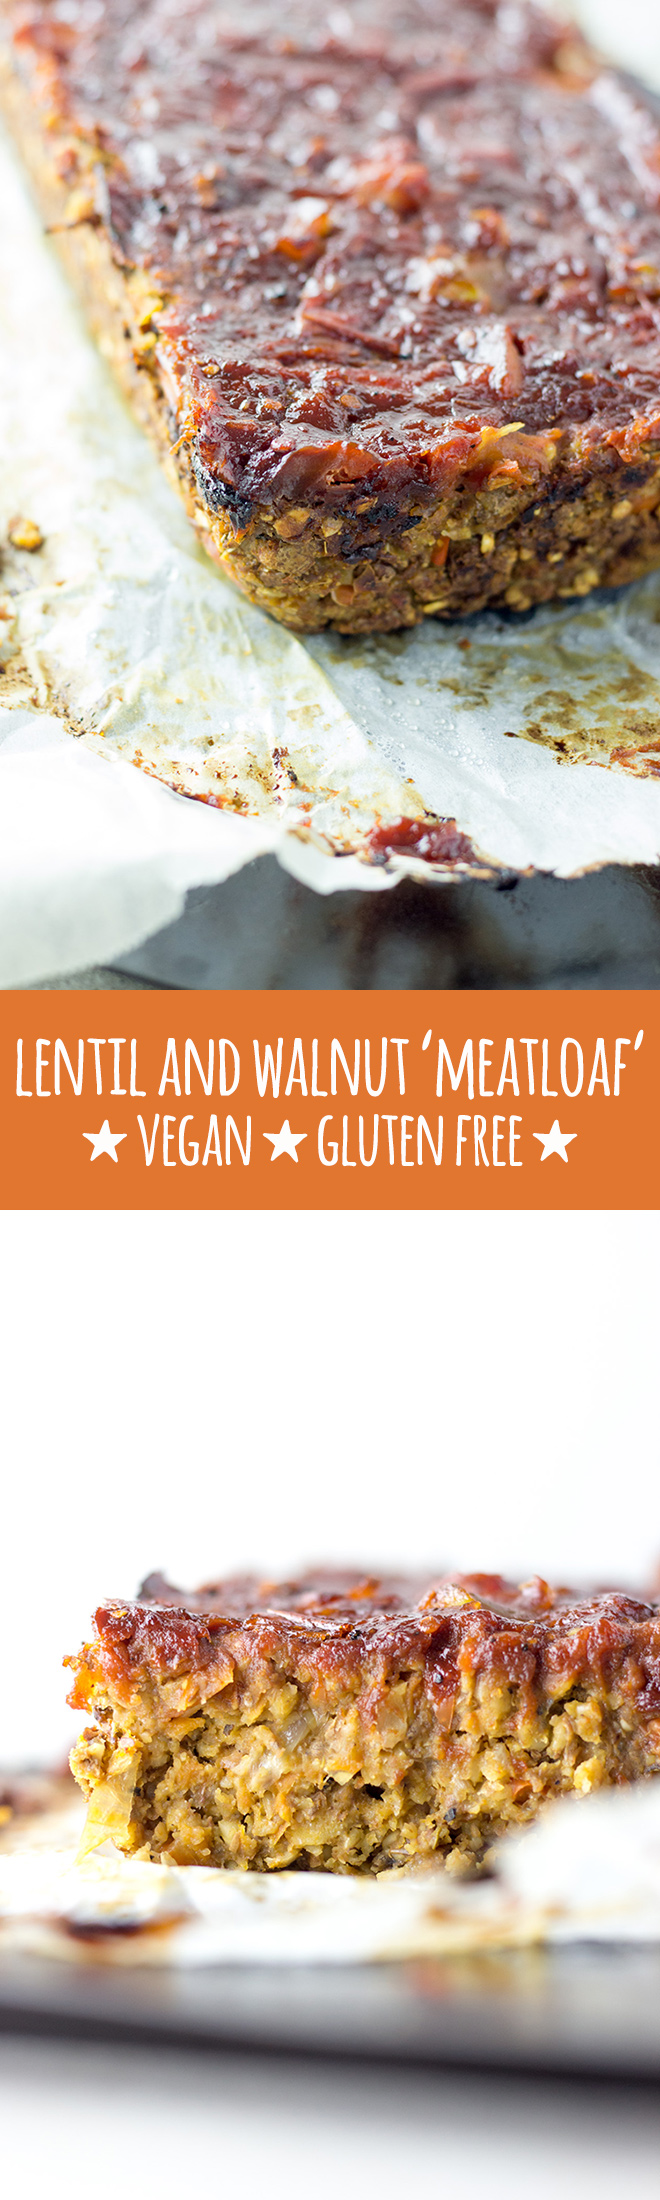 This glazed vegan loaf is made with lentils, walnuts, vegetables, oats, polenta and chia seeds, which altogether combine to create a savoury and flavourful loaf for those times when you just need some good old-fashioned comfort food.